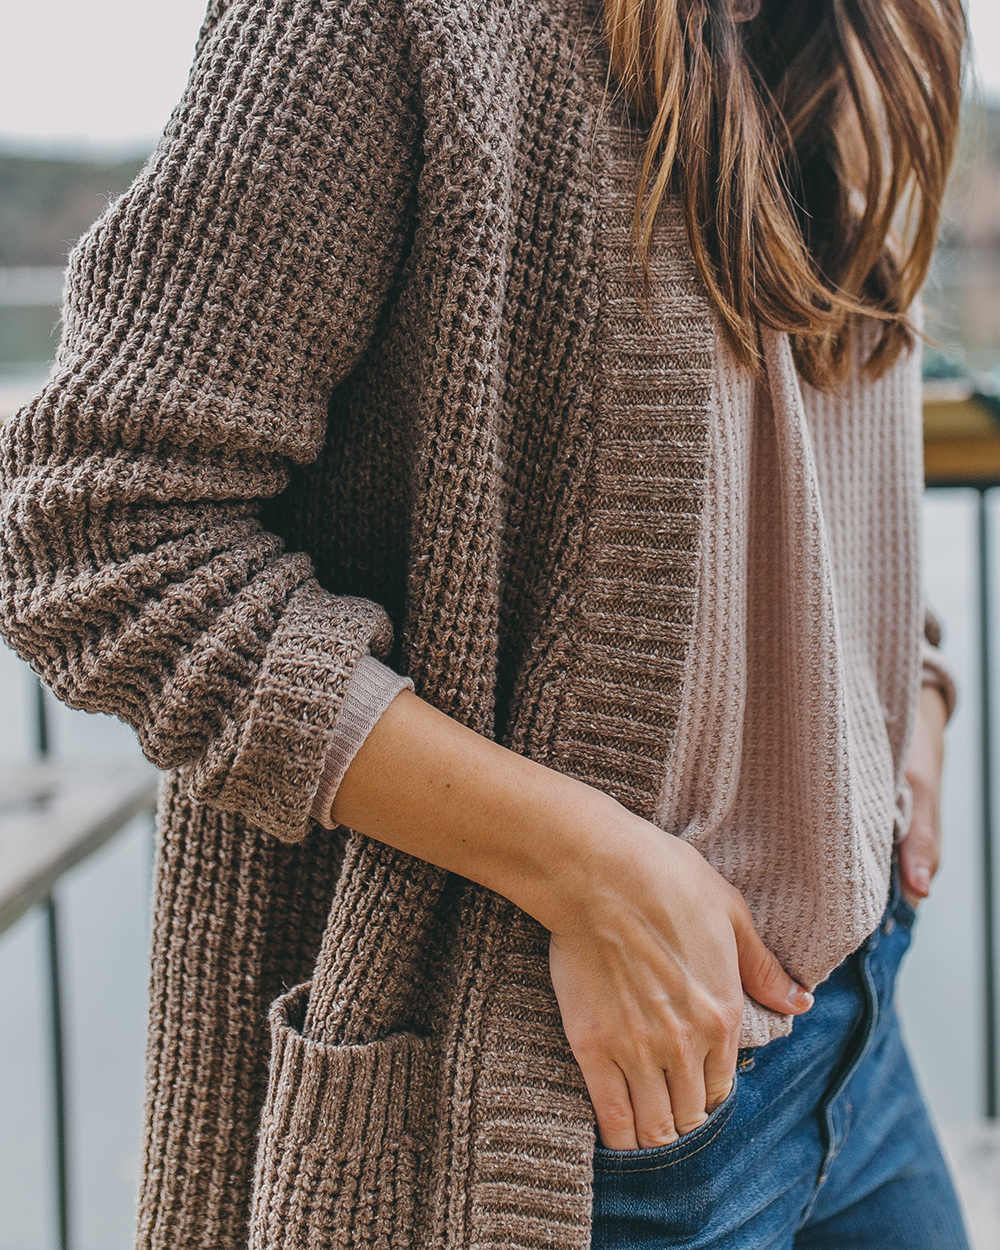 livvyland-blog-olivia-watson-austin-texas-lifestyle-motherhood-blogger-mozarts-coffee-patagonia-cardigan-off-country-cardigan-1